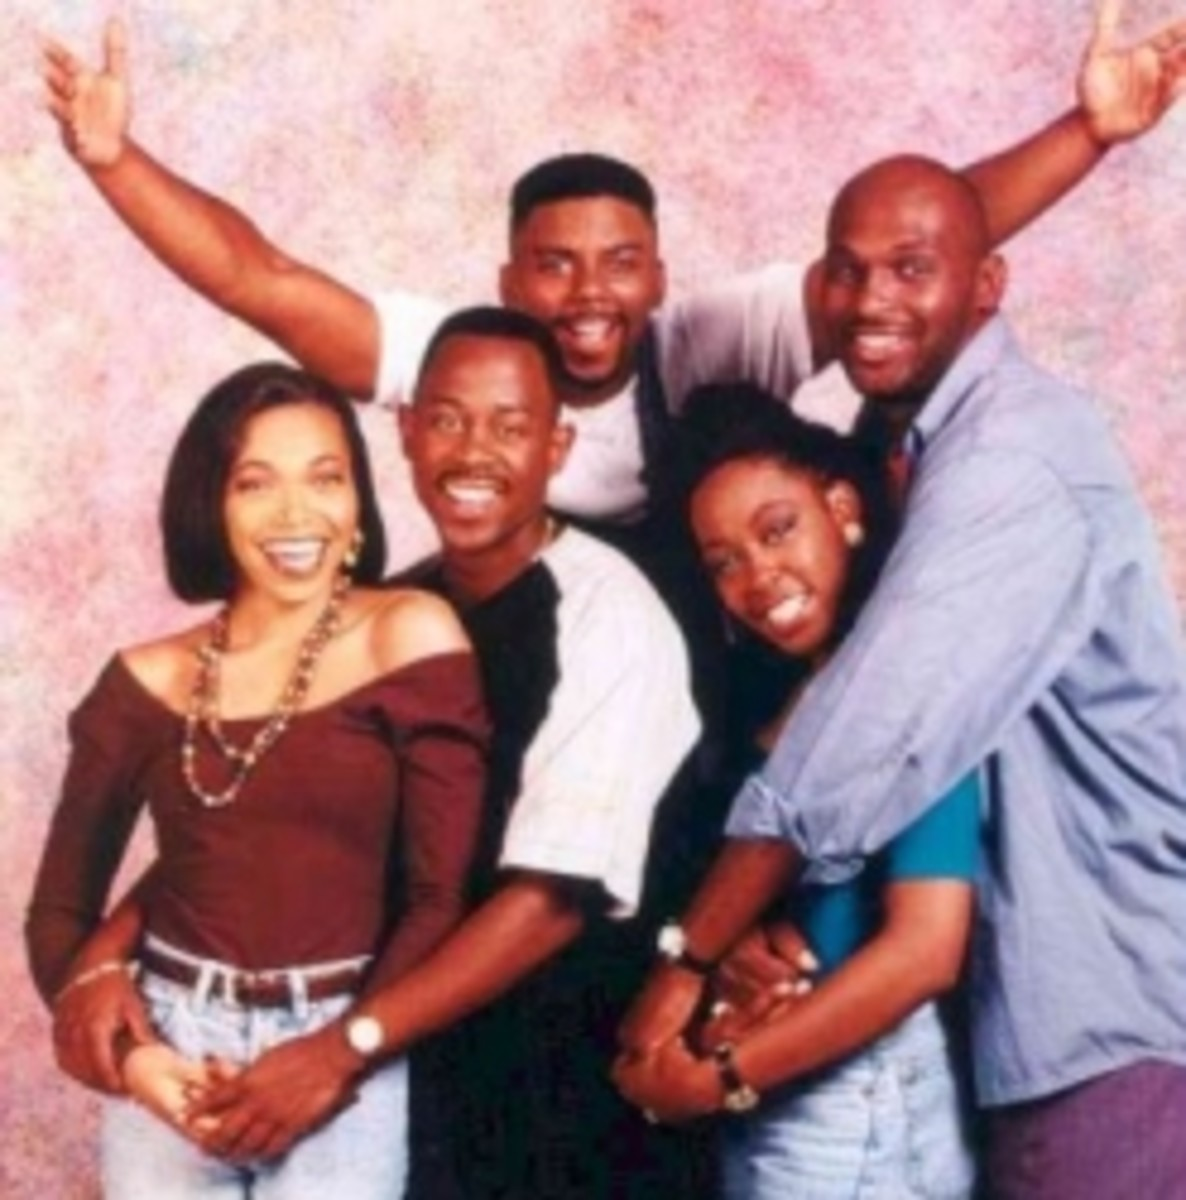 List of Black Cast TV Shows - Martin Show